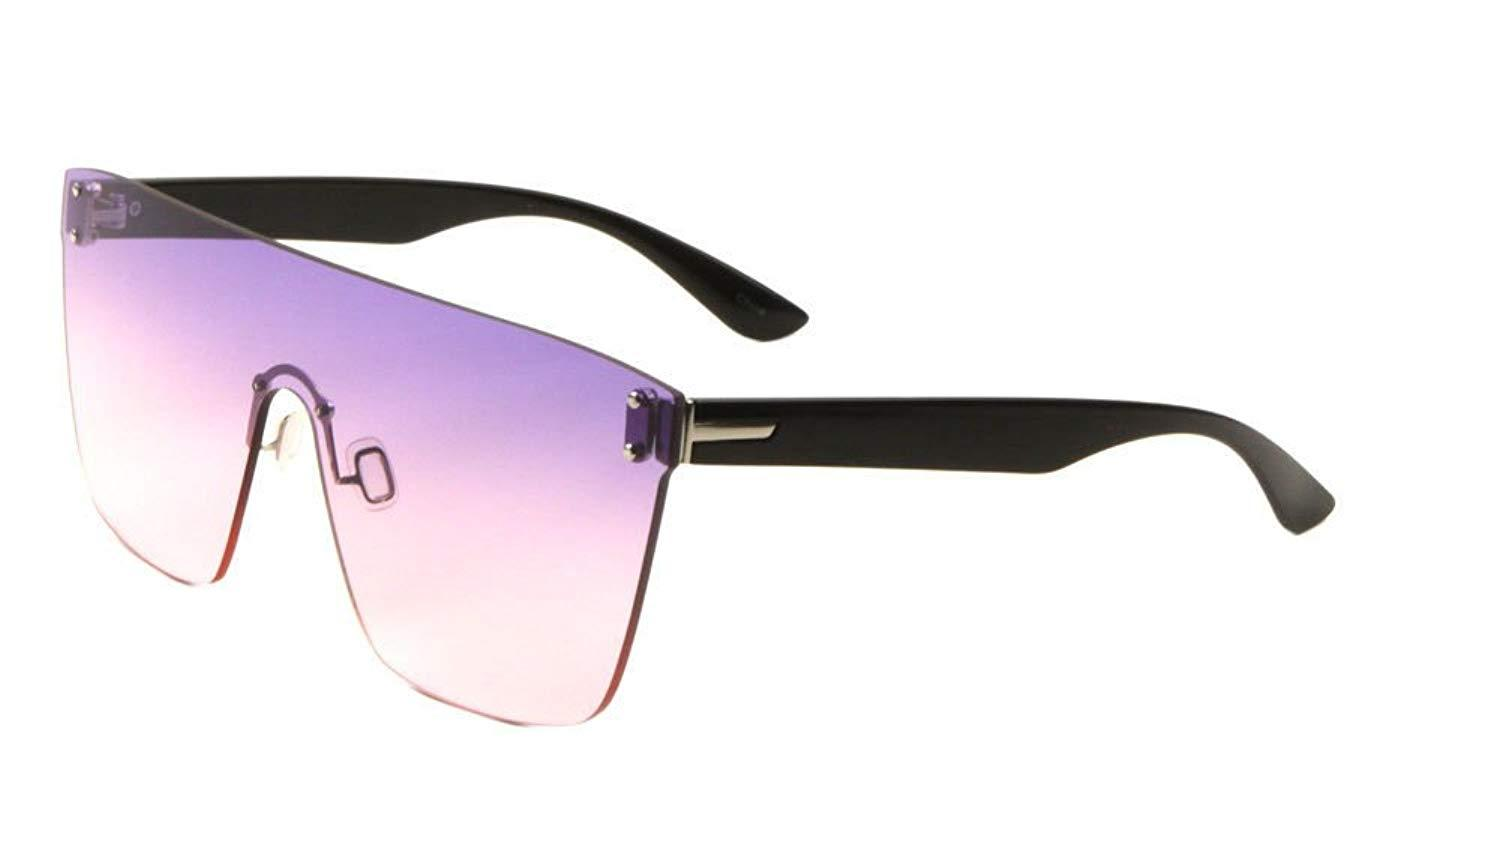 fa7d798aae ... Flat Top Oversized Rimless One Piece Shield Sunglasses Black   Silver  Frame